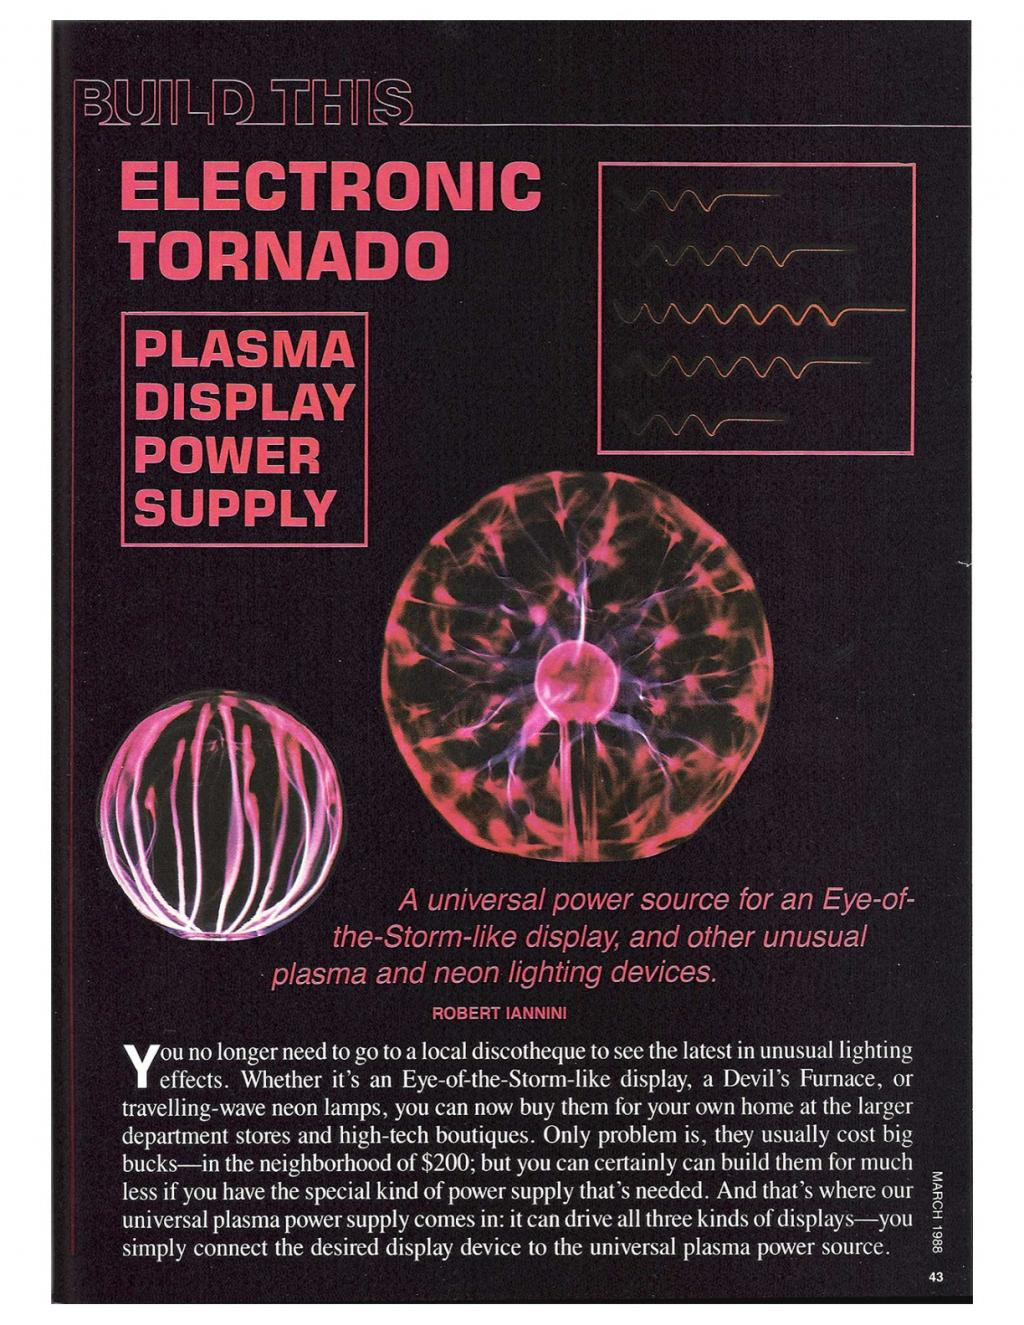 Preview of Electronic Tornado - Plasma Display Power Supply plan